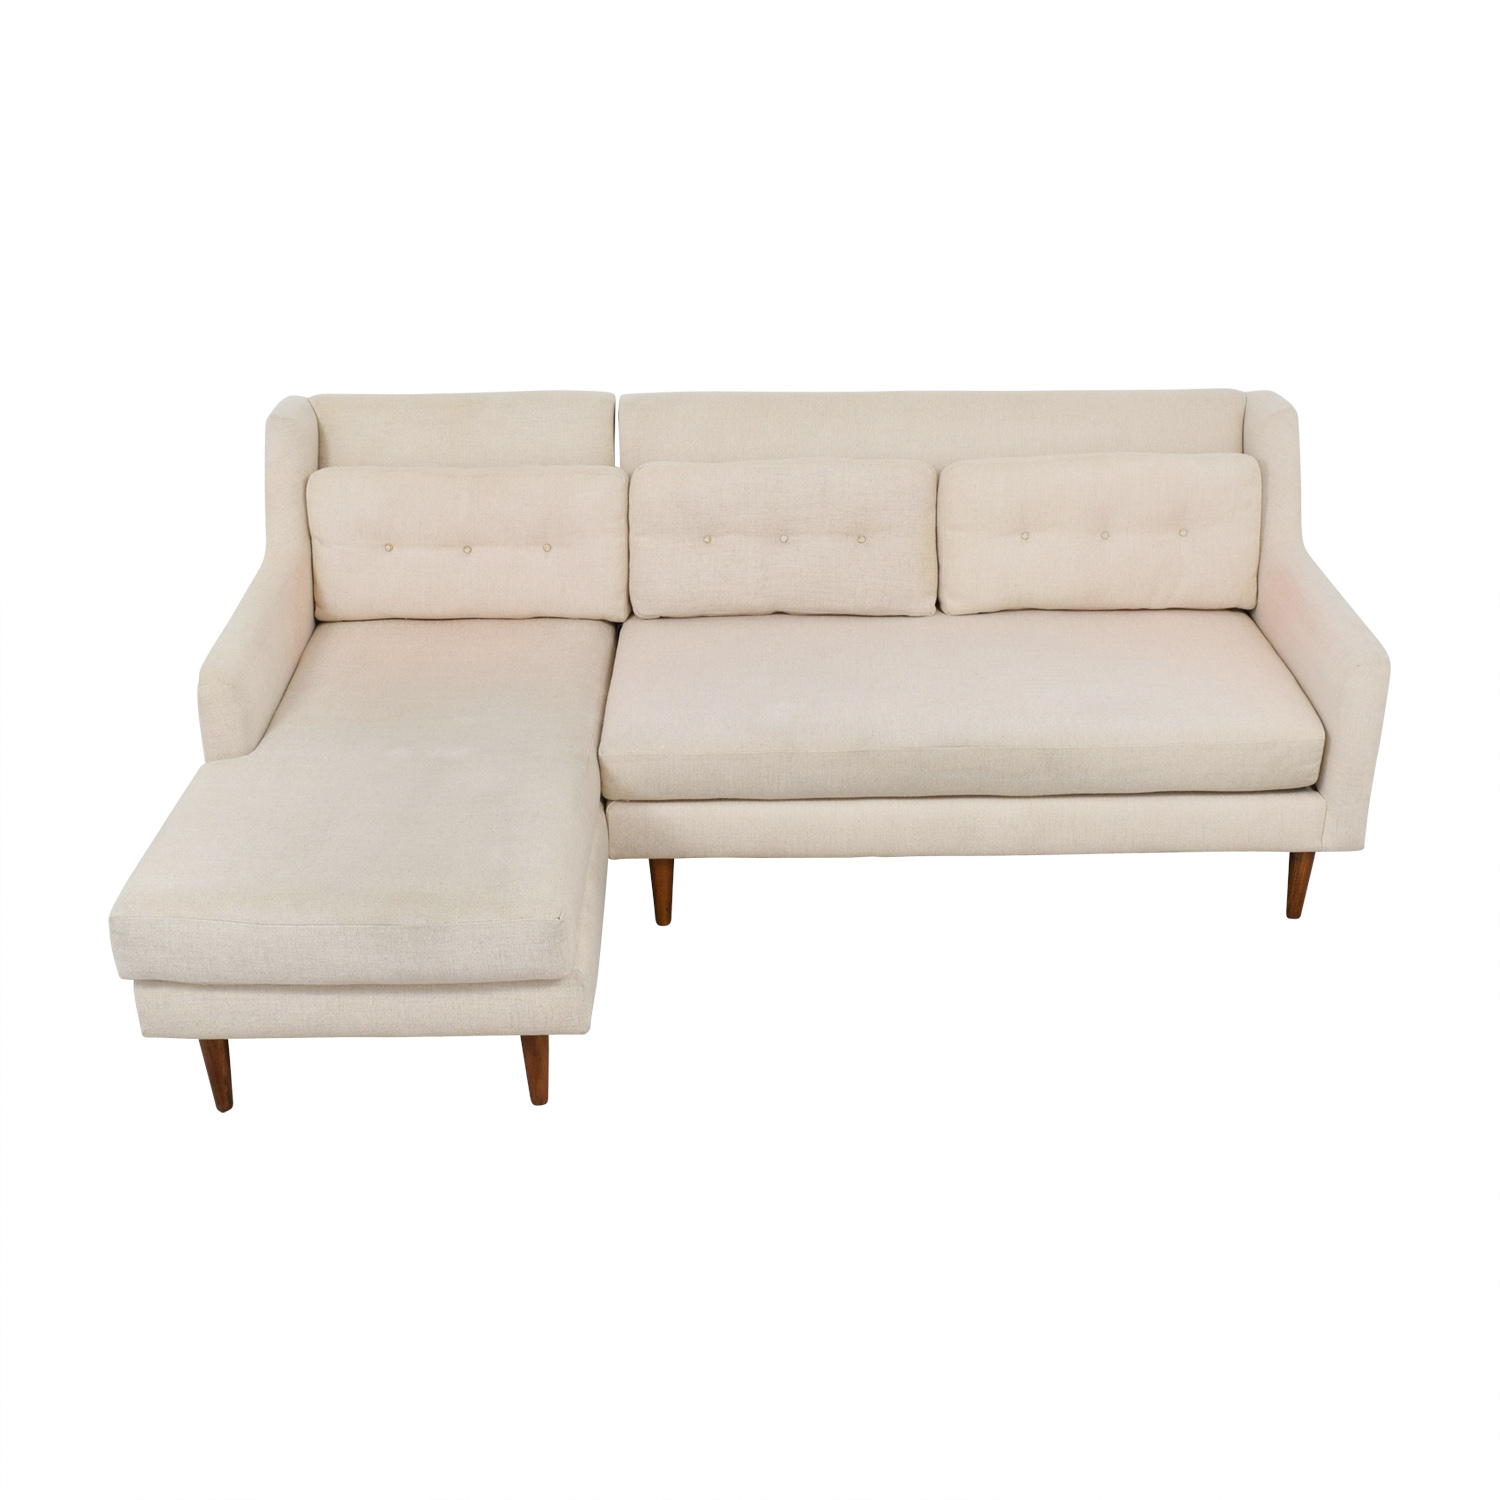 West Elm West Elm Beige Mid Century 2-Piece Crosby Chaise Sectional Sofa nyc